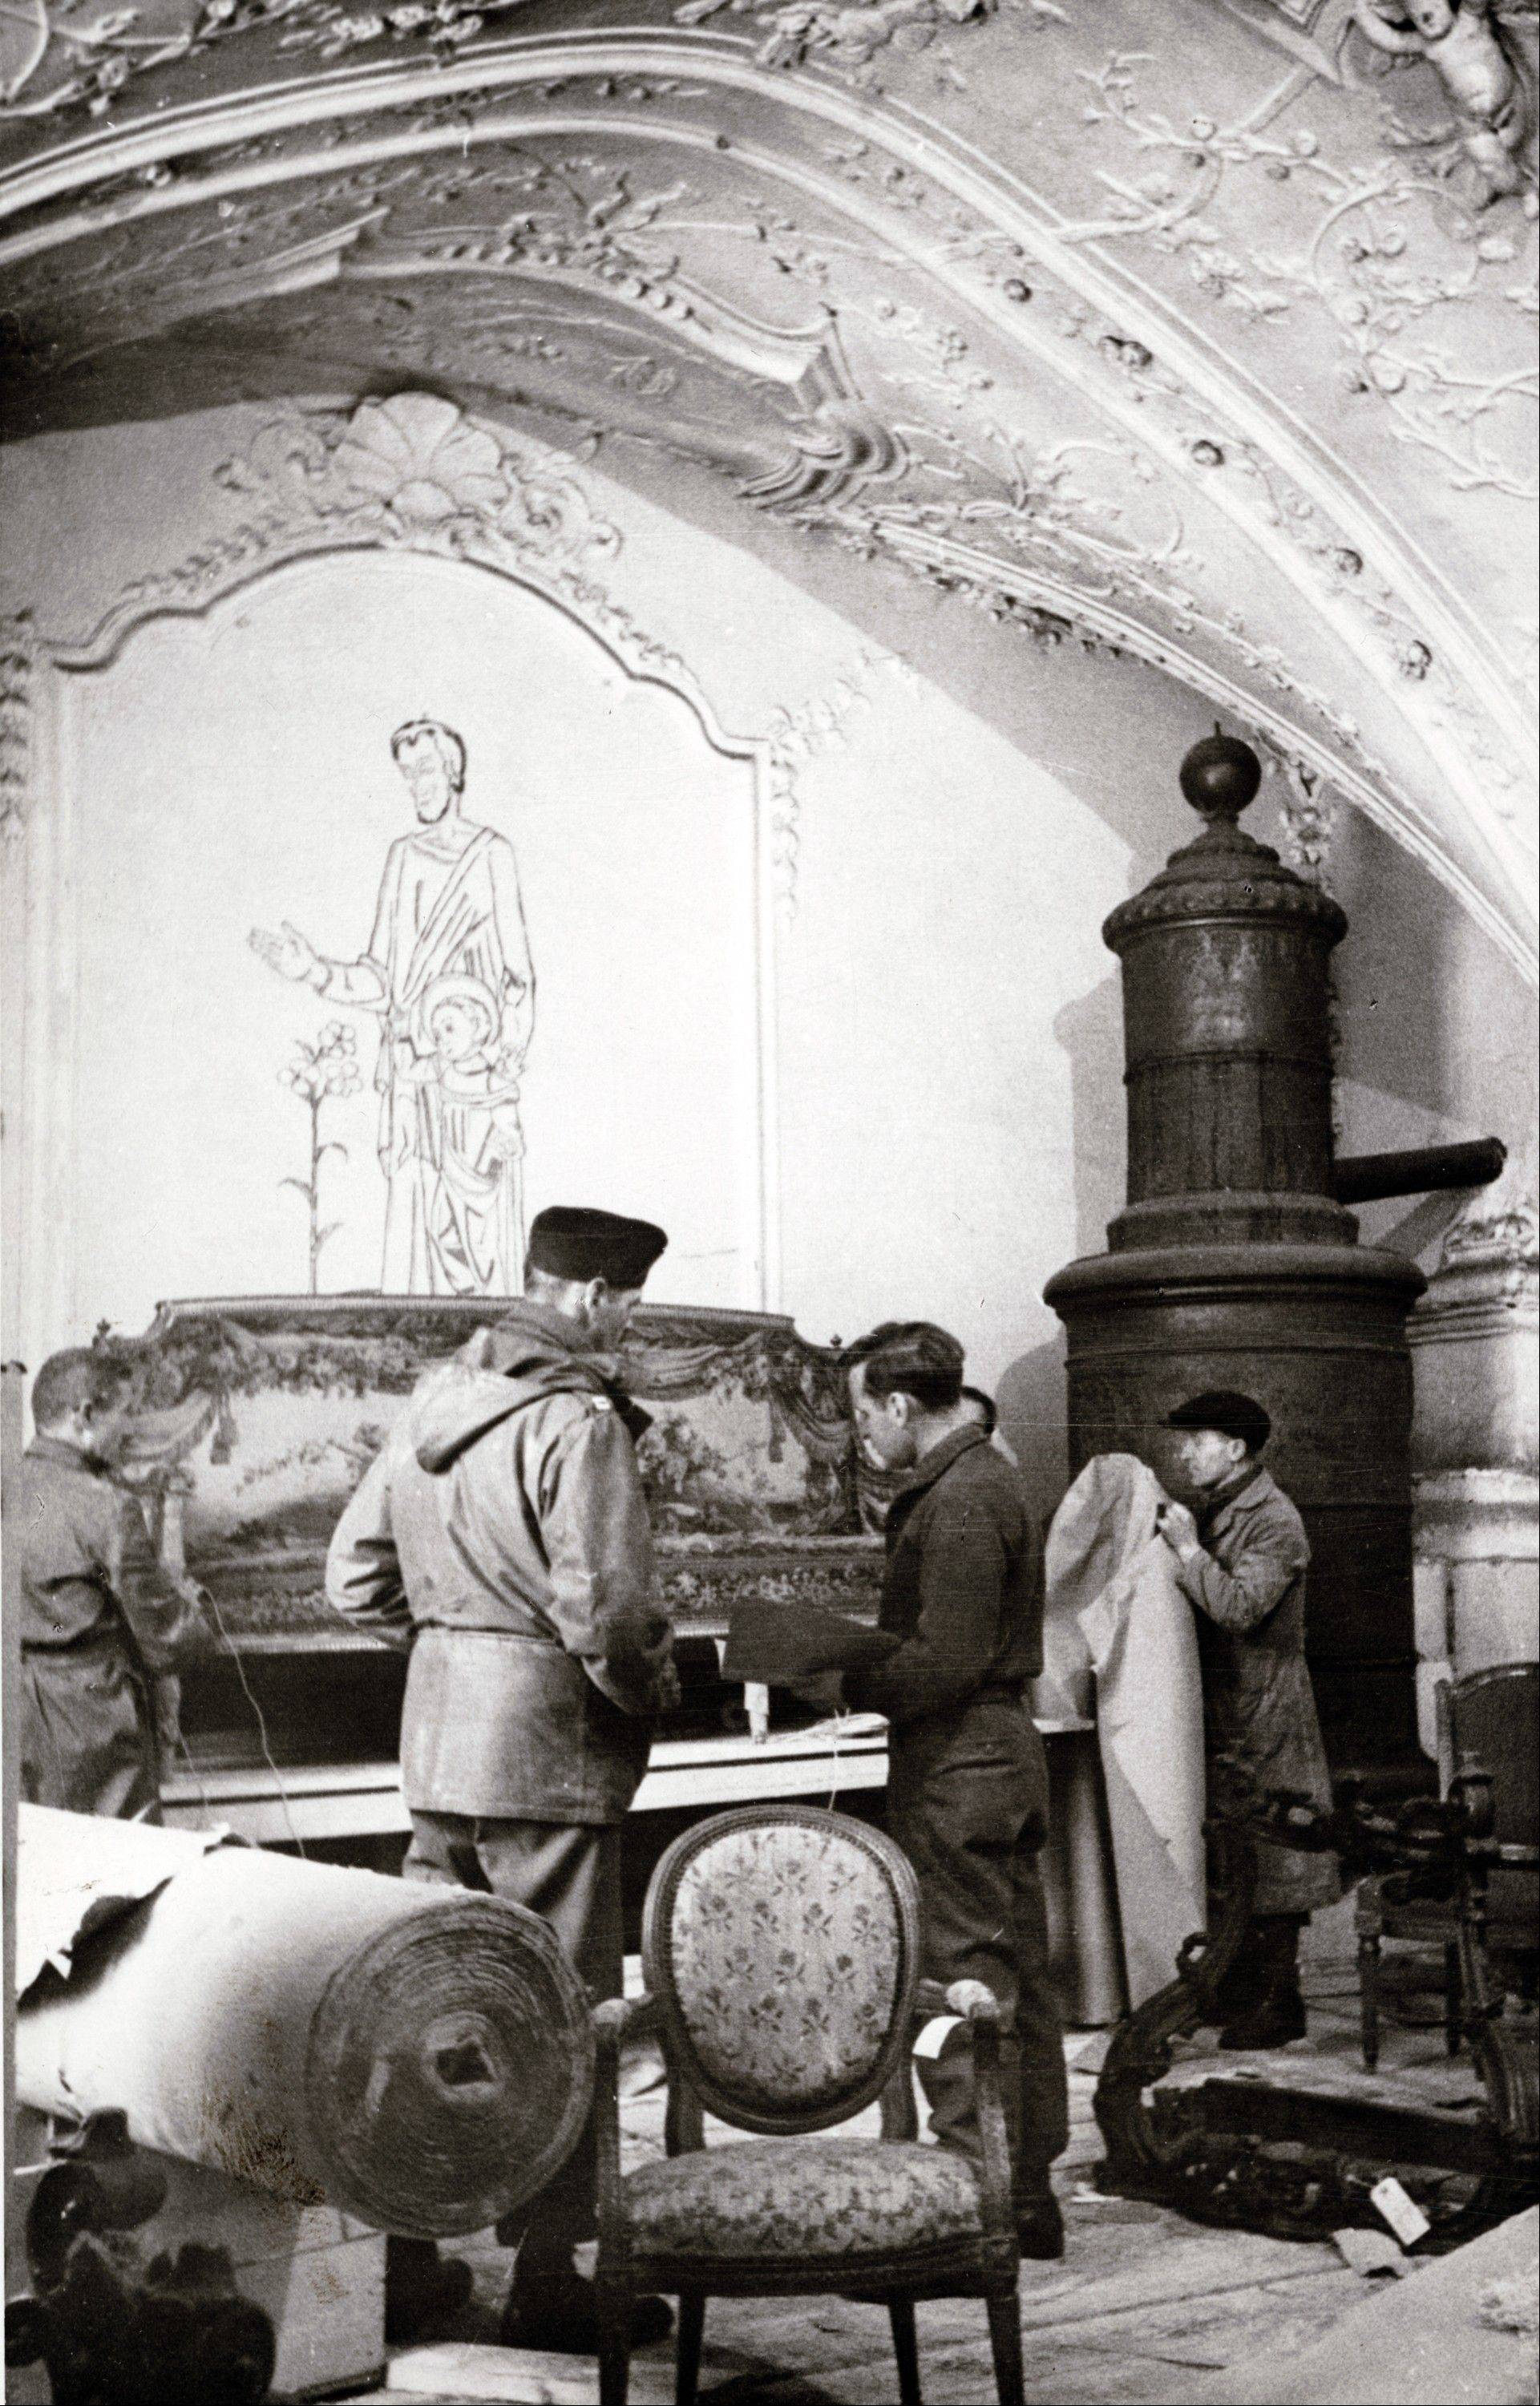 Art was rescued from the Buxheim Monastery in Bavaria. Looted art from World War II is going on display in Washington.